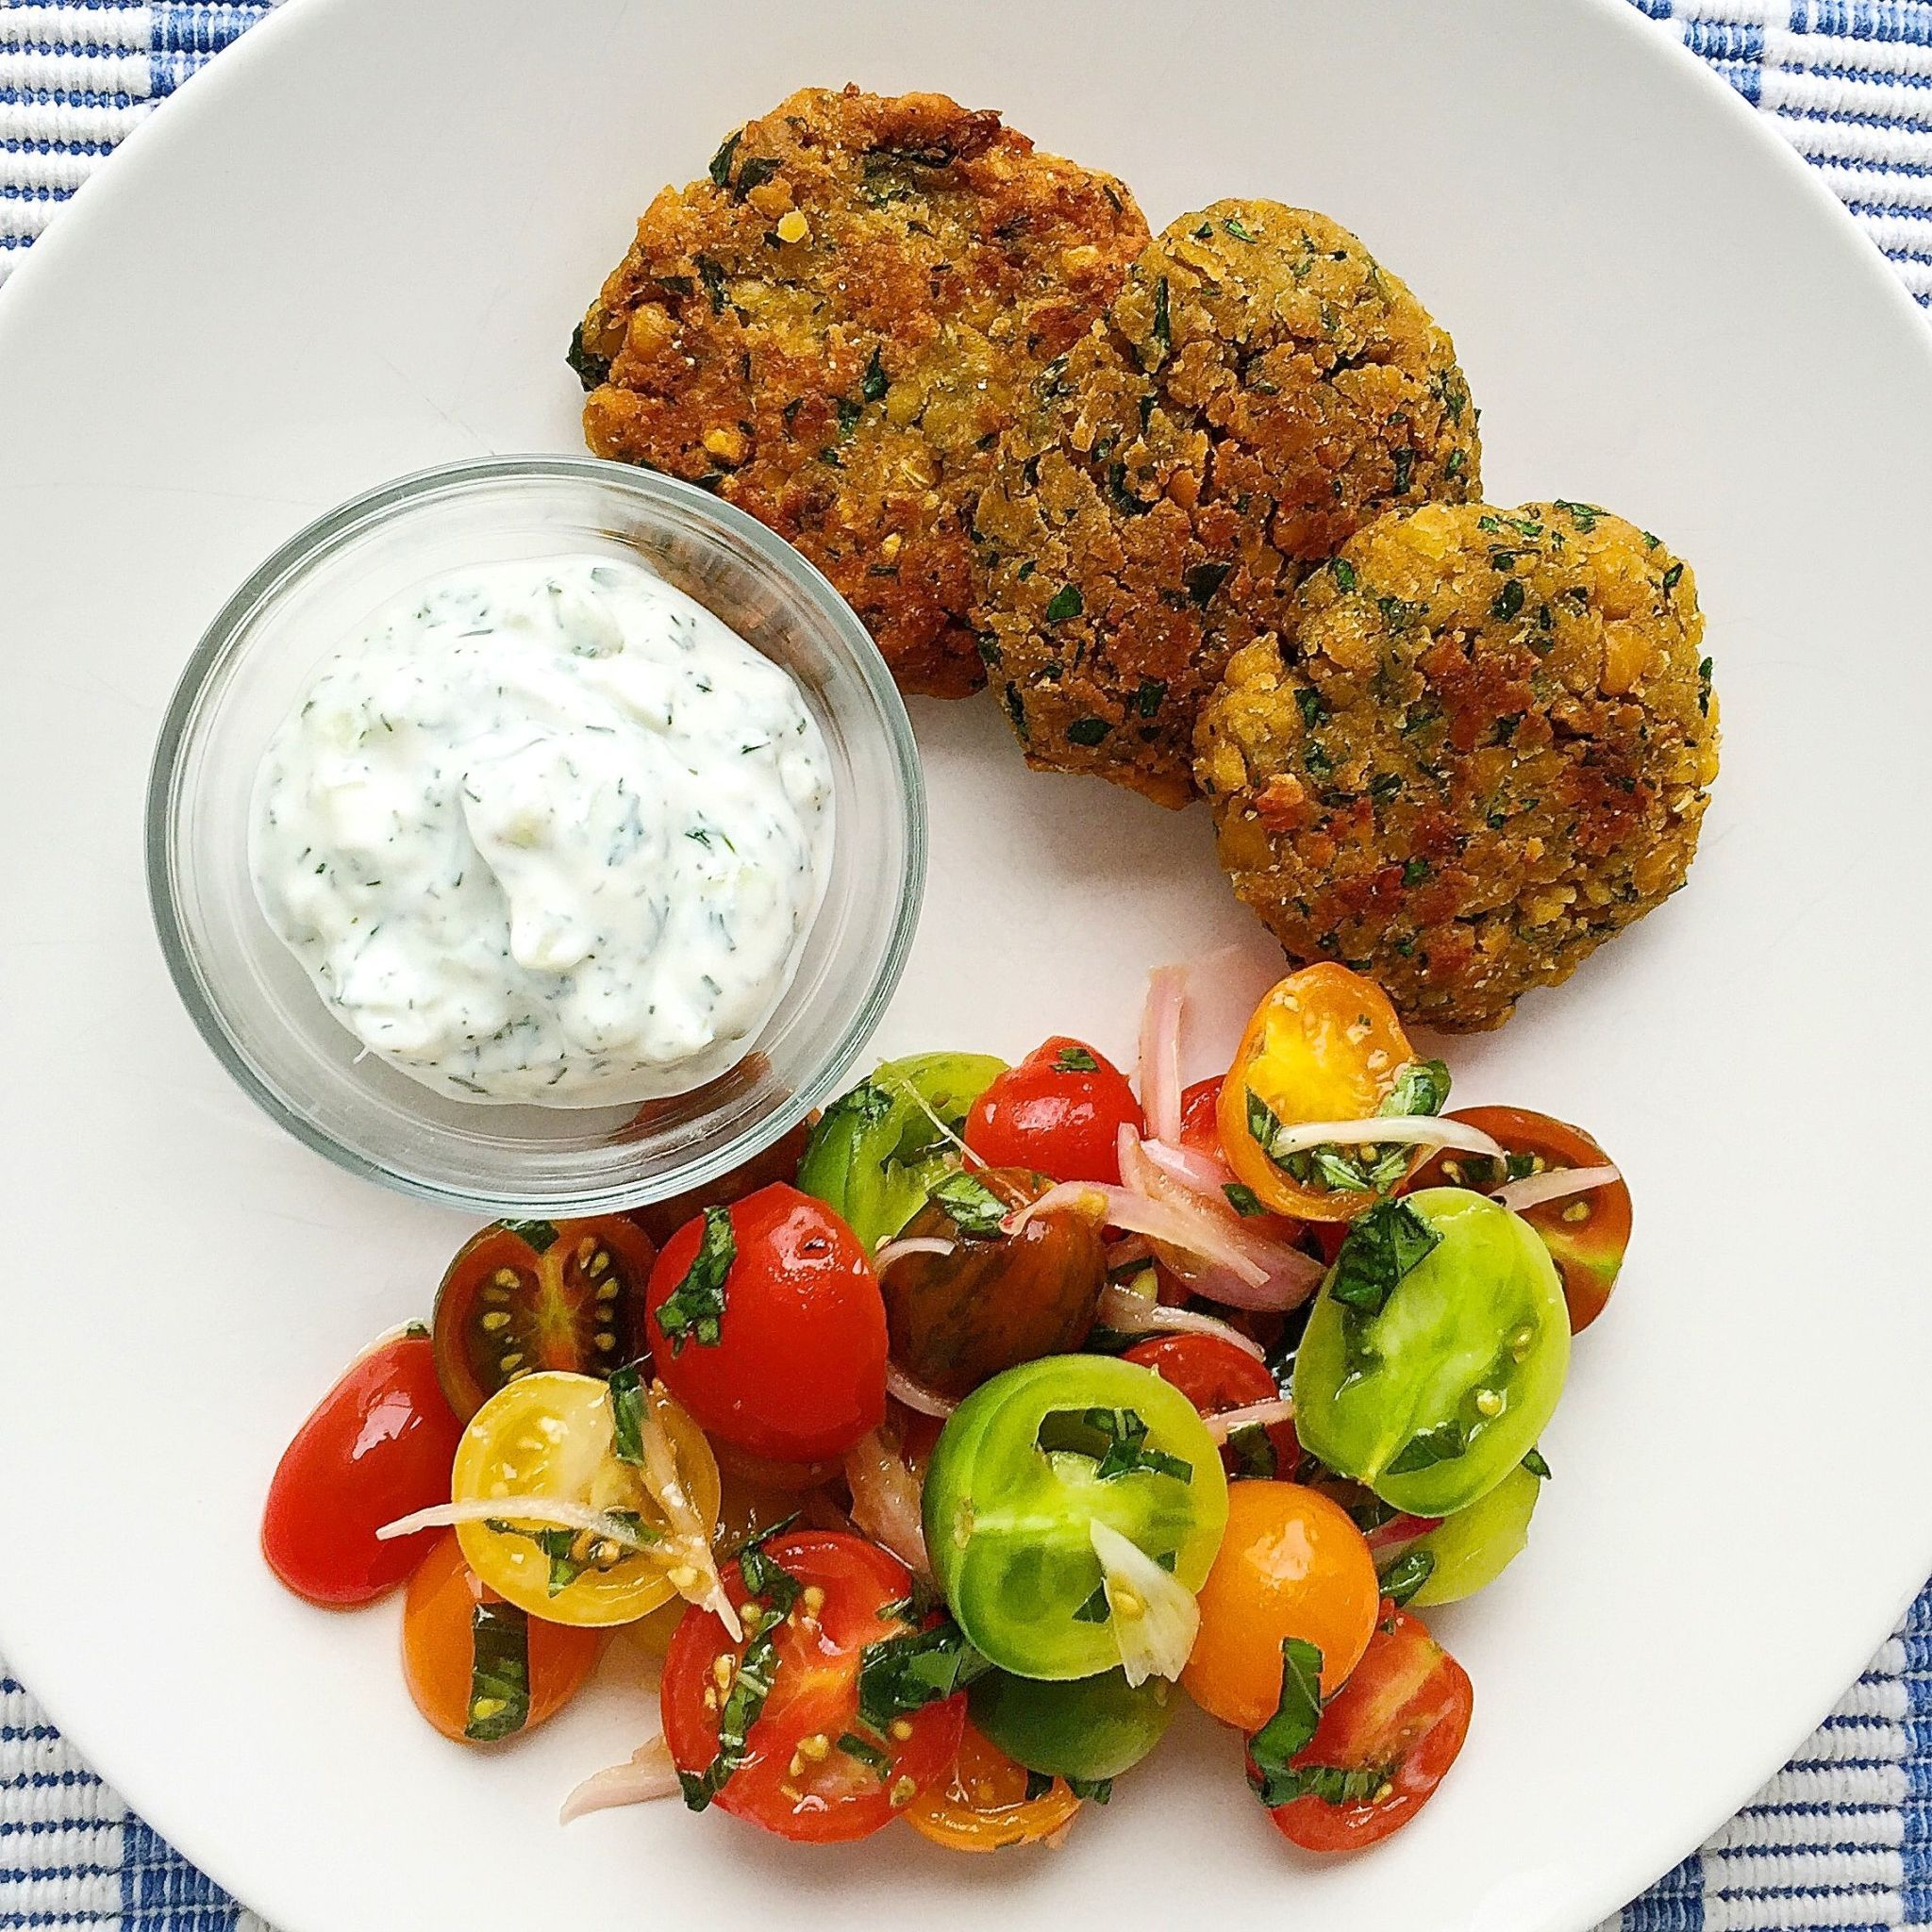 Crispy Chickpea Fritters with Tzatziki and Tomato Salad